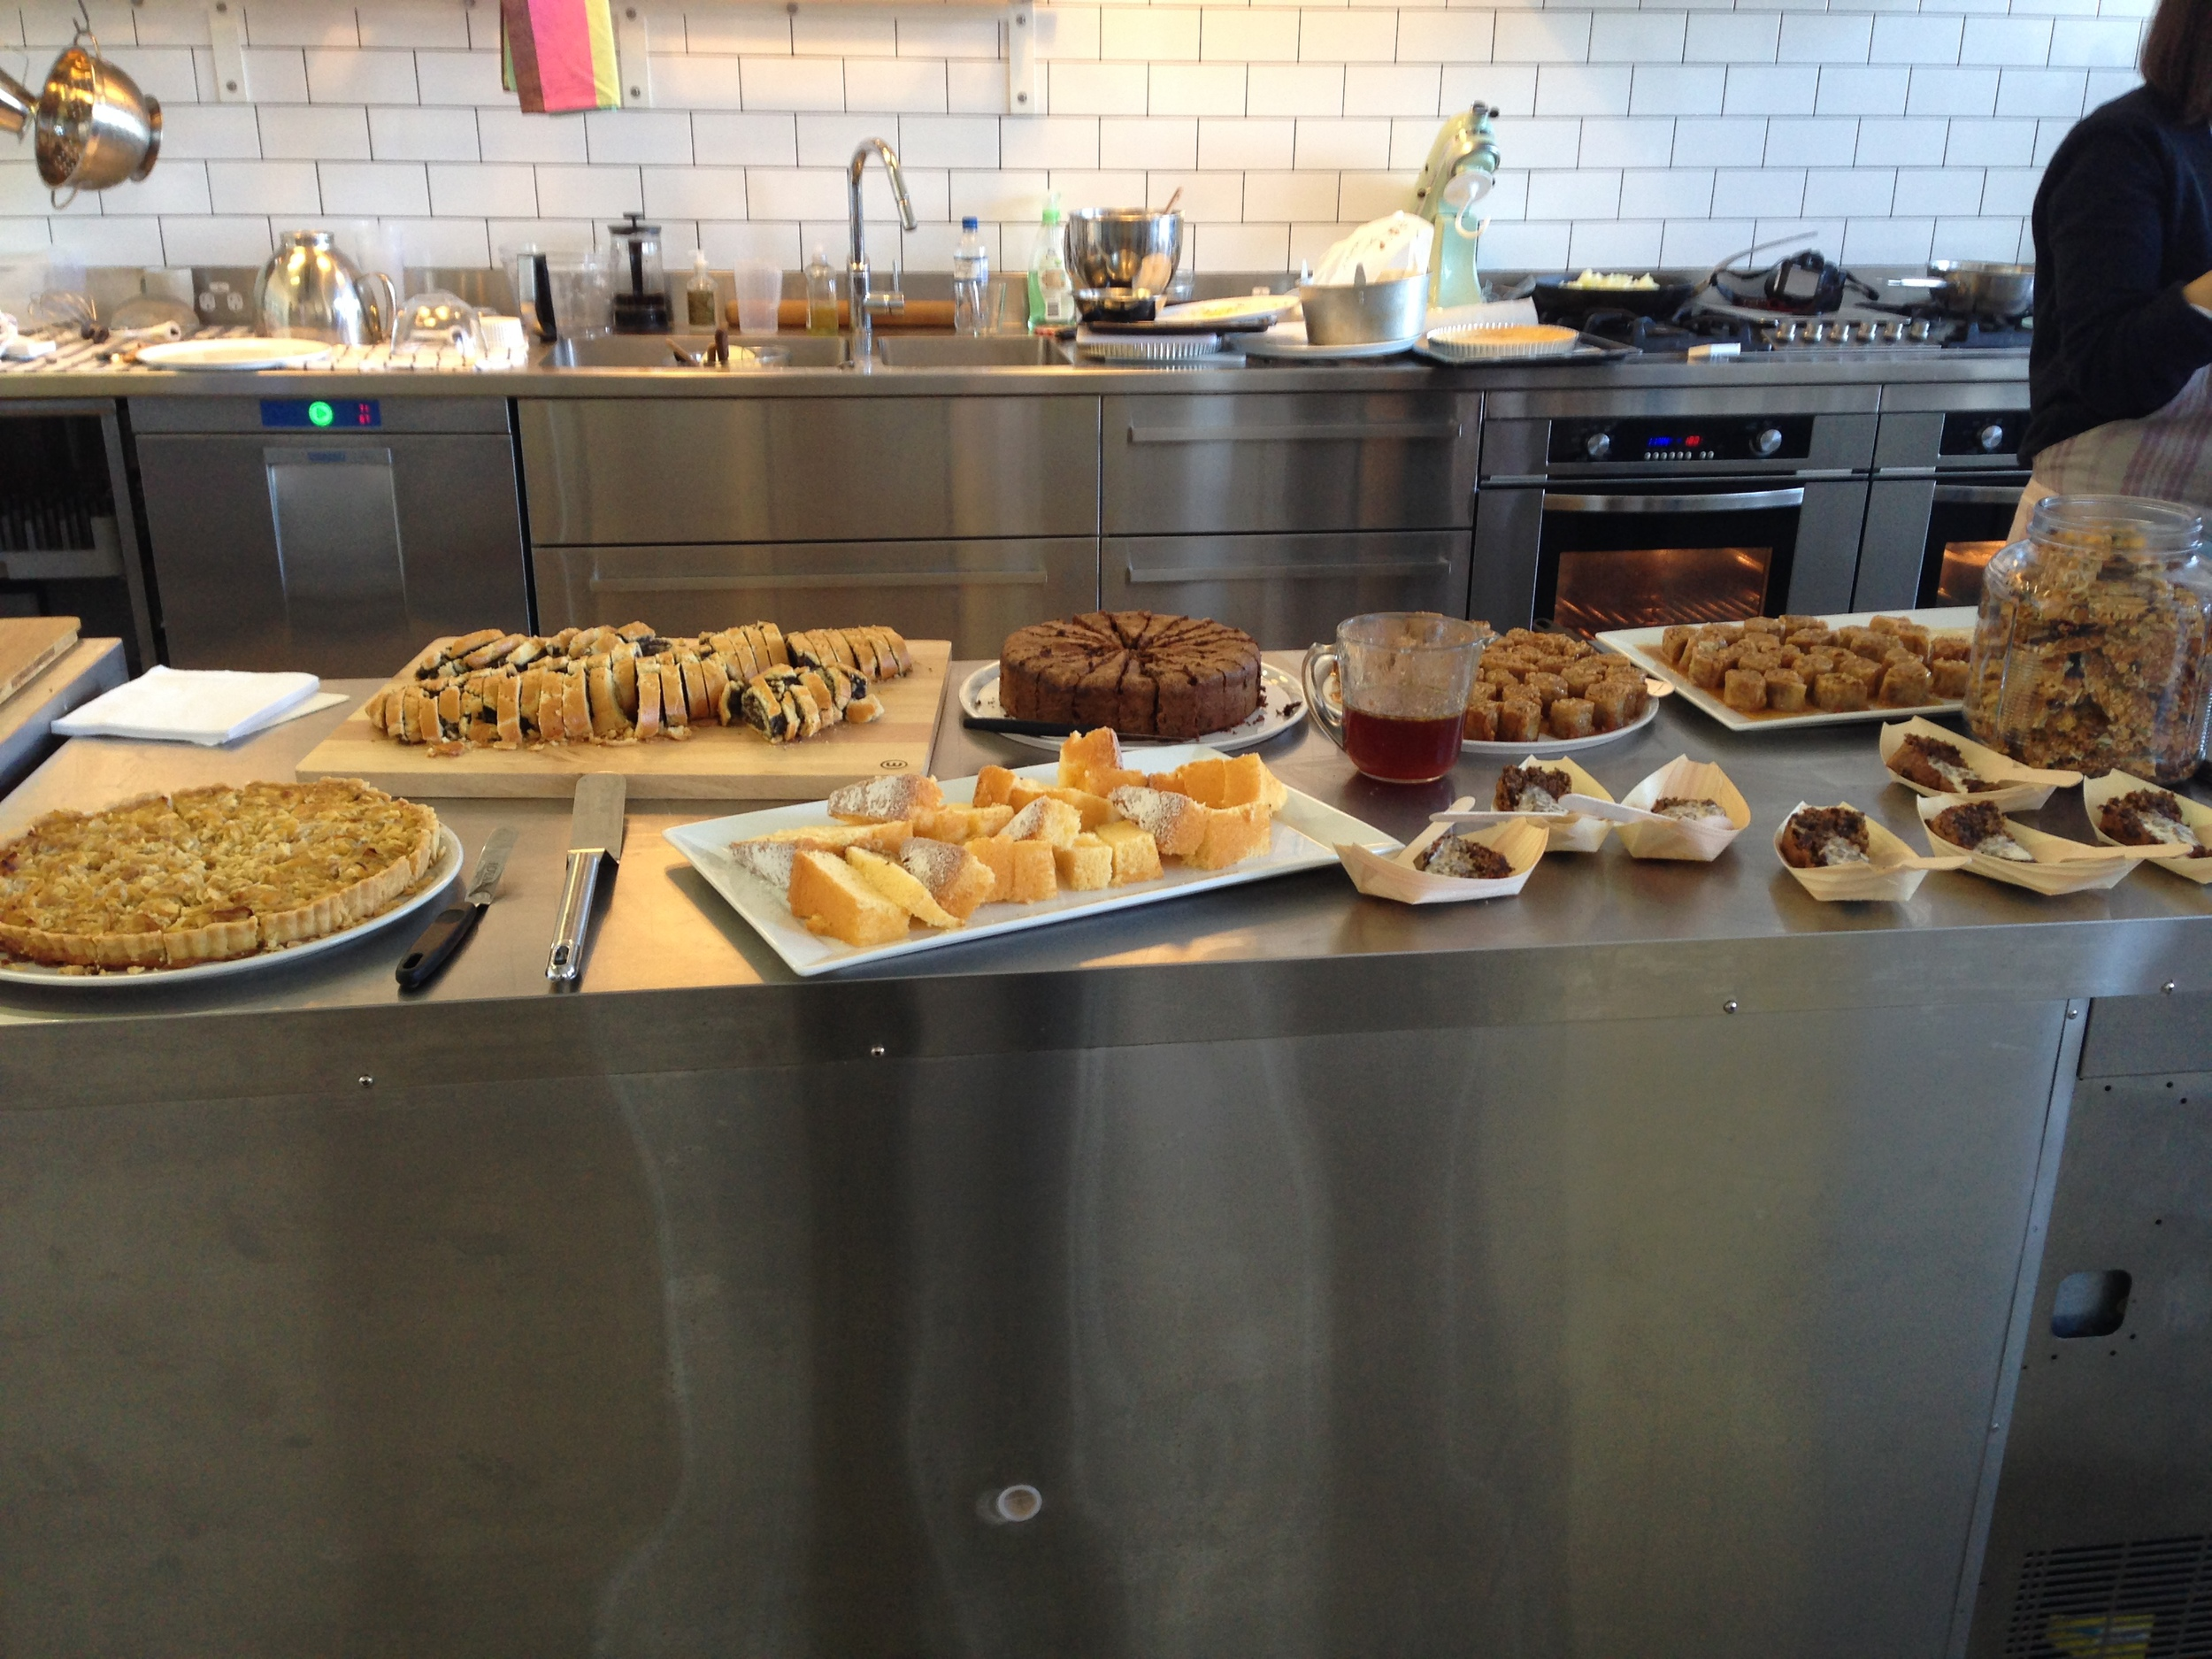 Cakes & Baked Goods prepared by the Monday Morning Cooking Club. BakeClub event held at the Flash in the Pan Studio.